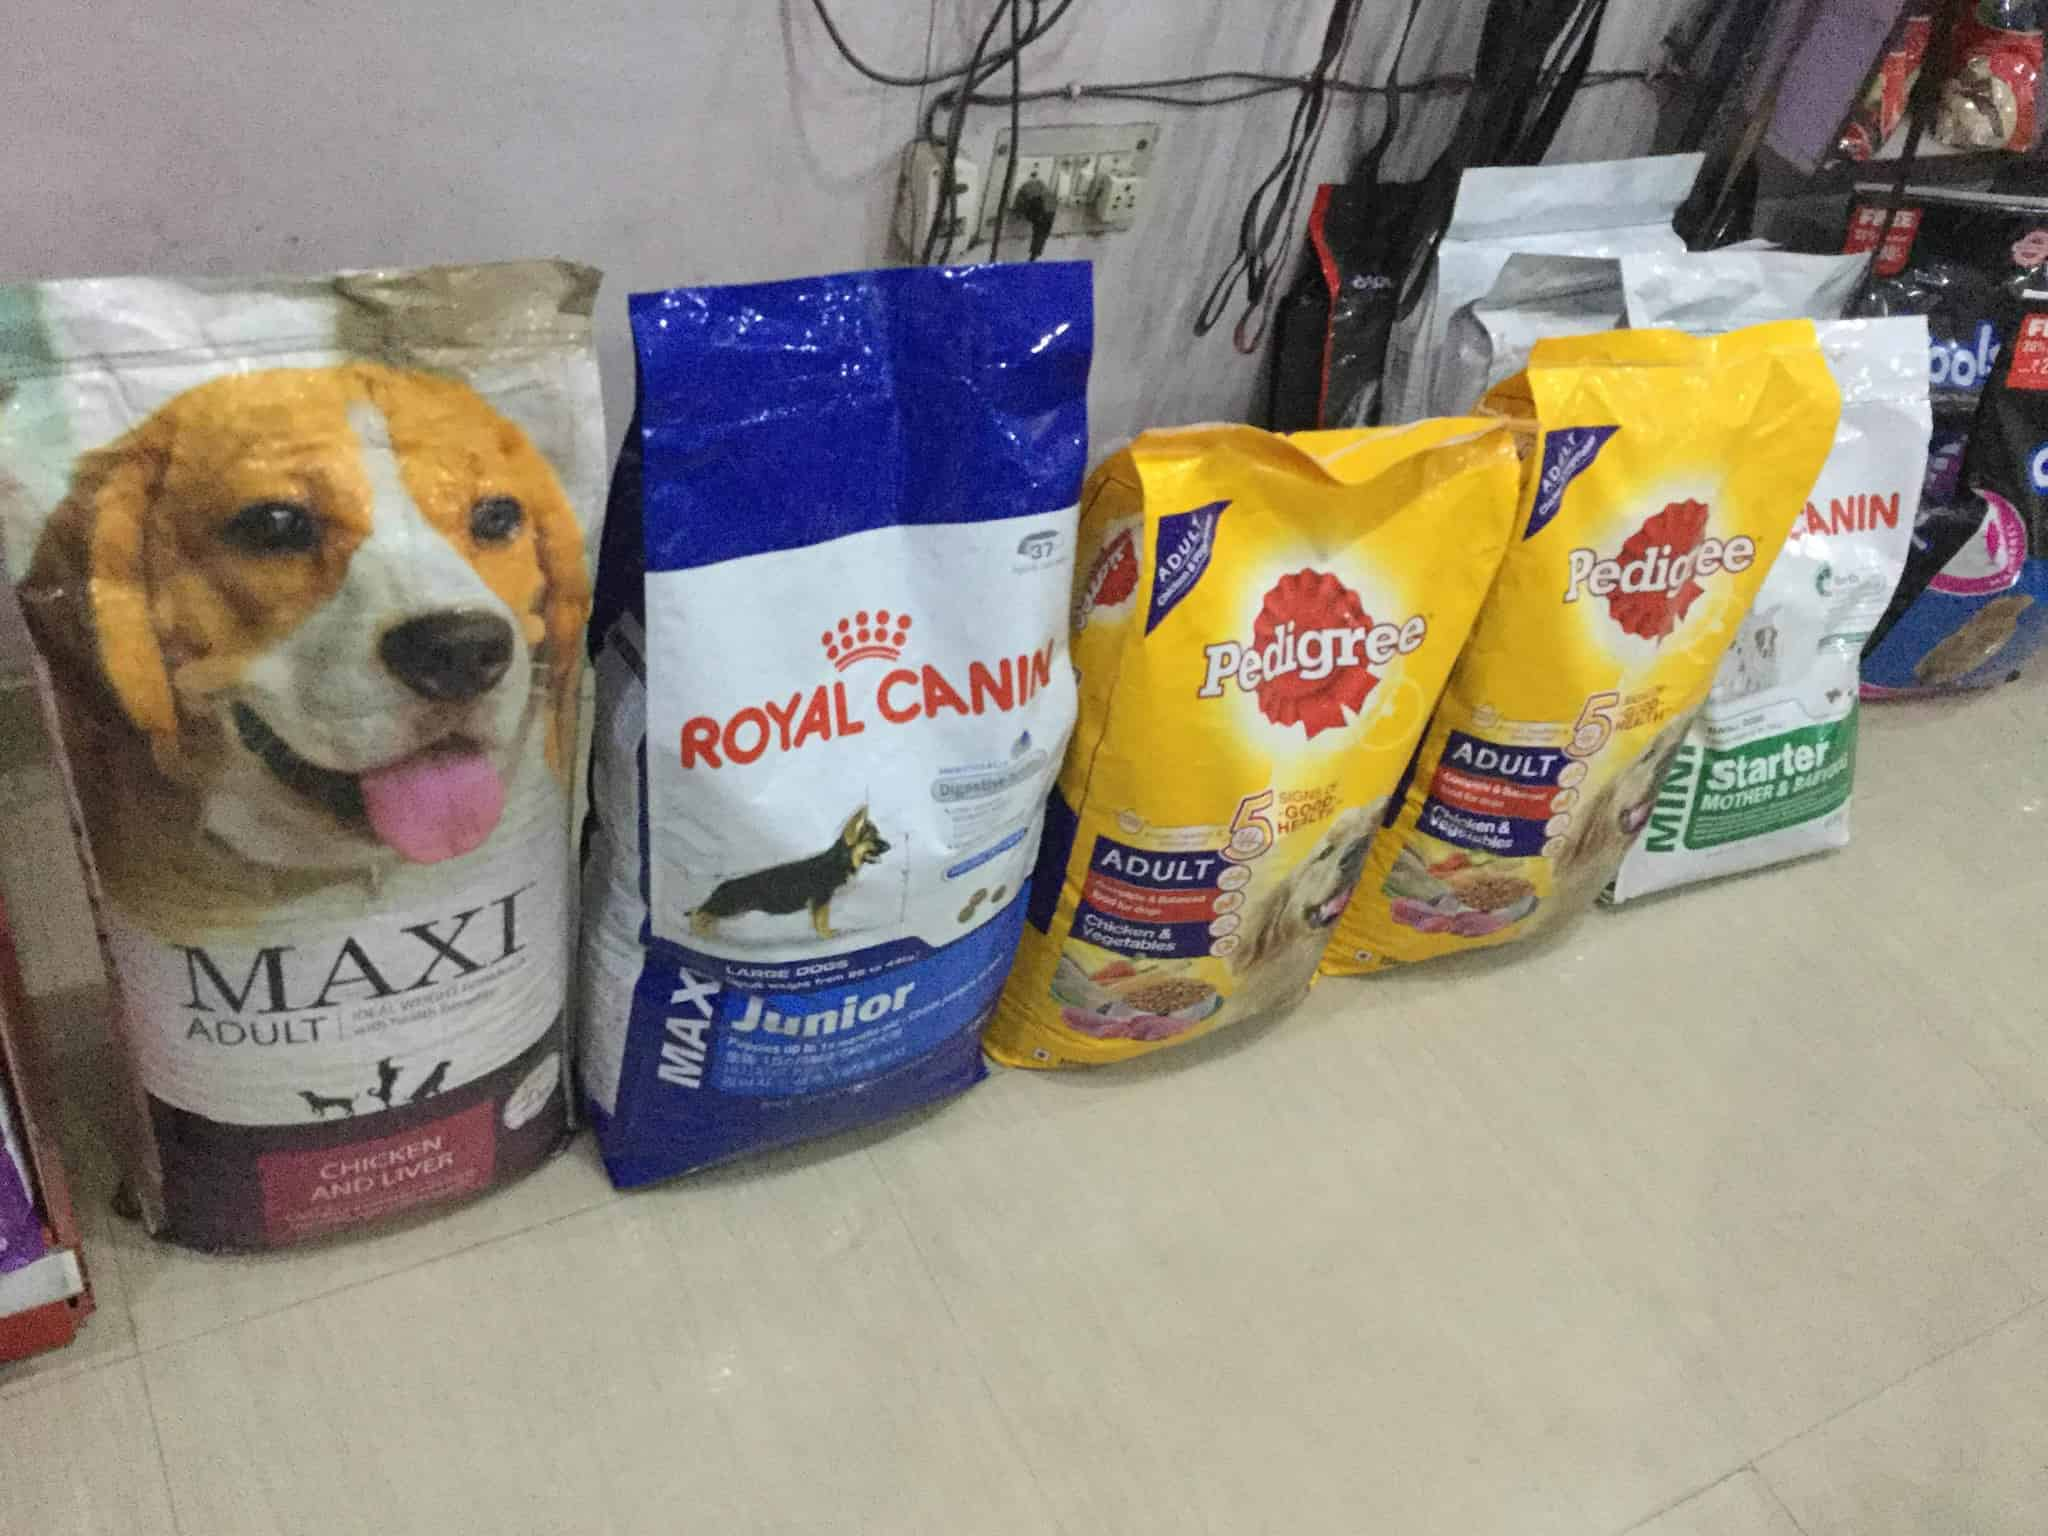 Rana Complete Pet Shop Photos, Sector 7, Faridabad- Pictures